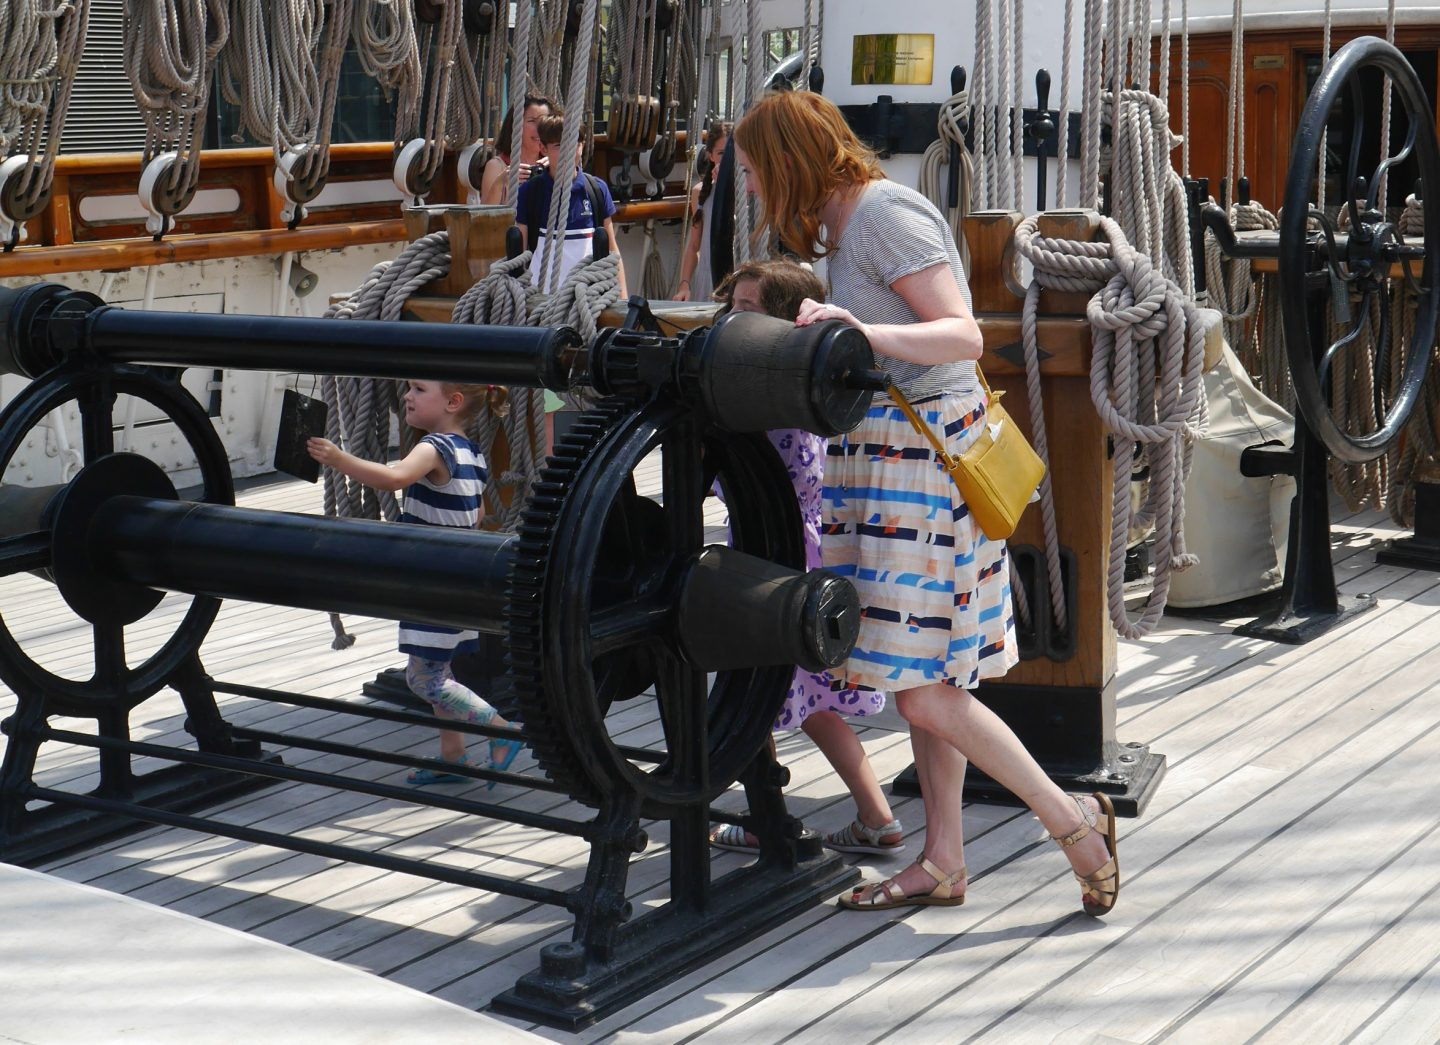 Cutty Sark review - the top deck